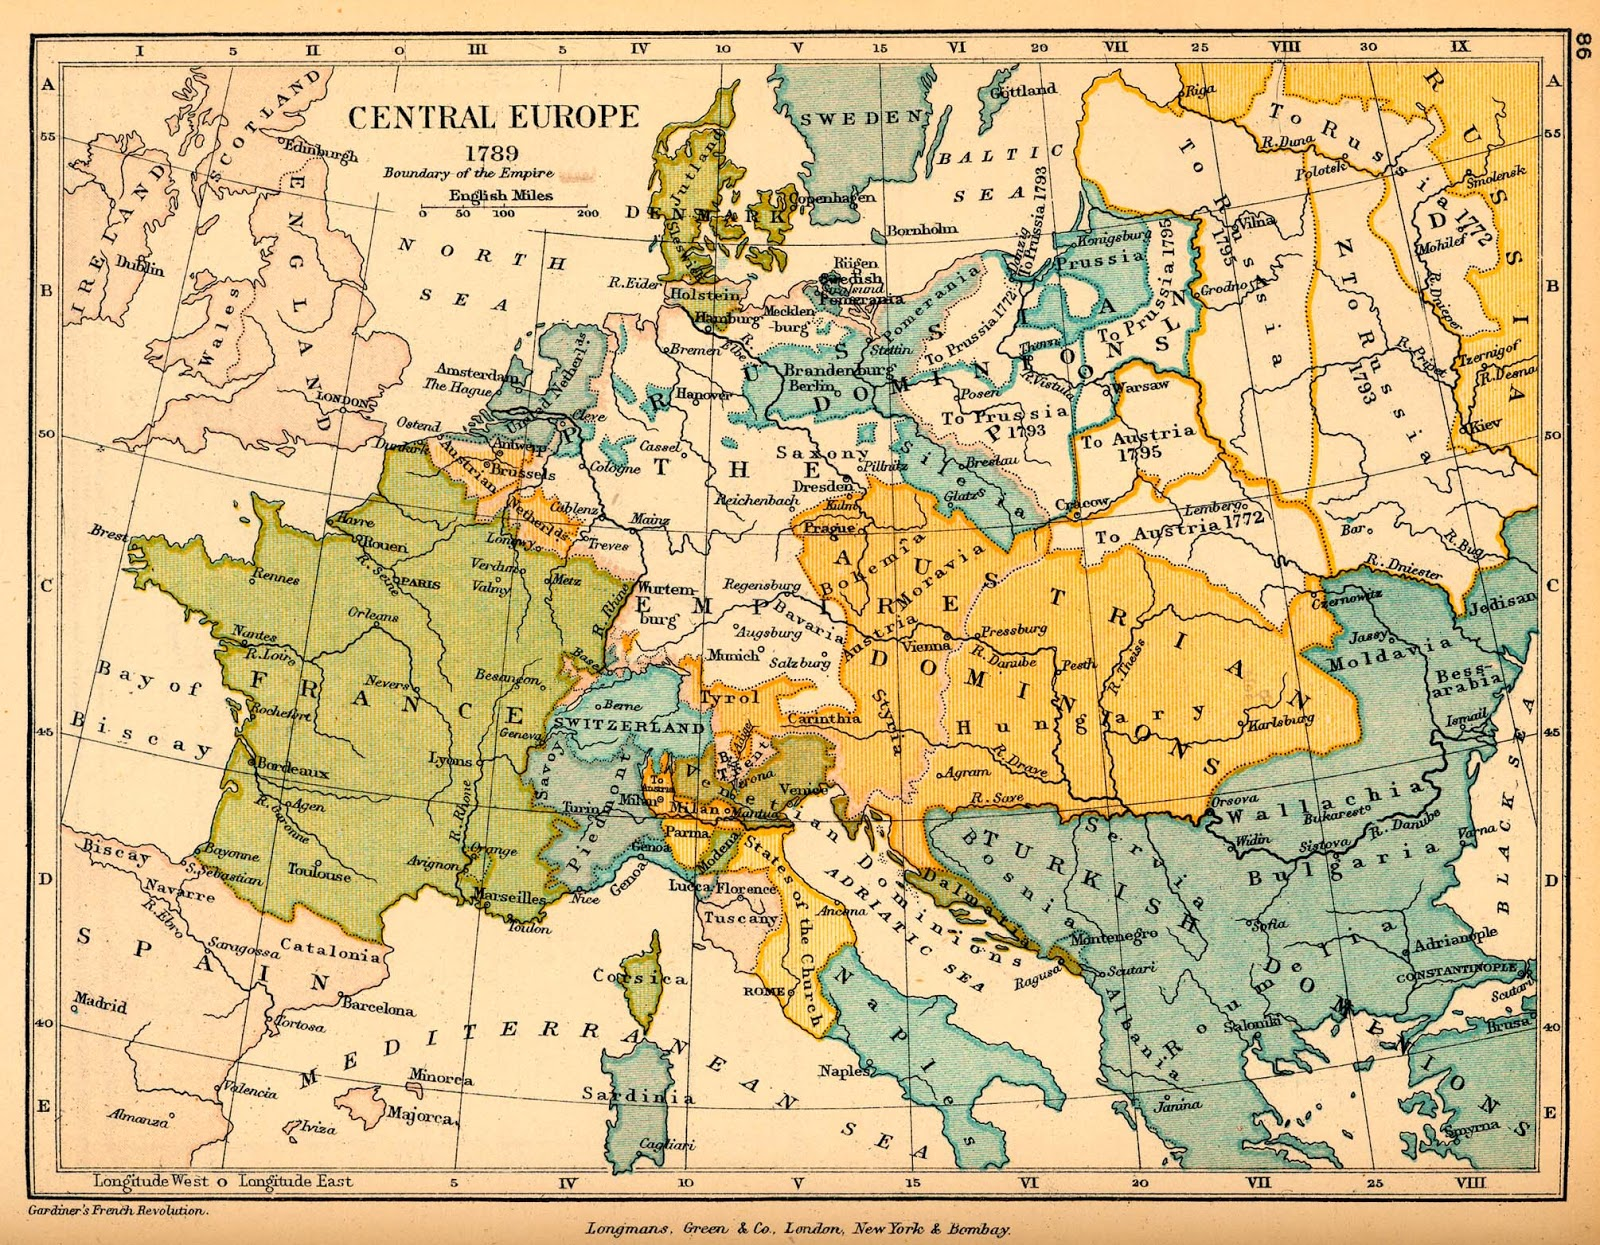 Regency wrangles maps of central europe 1789 1815 the effects of from 1789 1799 the borders of france expanded as shown below the map shows territory acquired during napoleons italian campaigns of 1798 and 1799 gumiabroncs Gallery